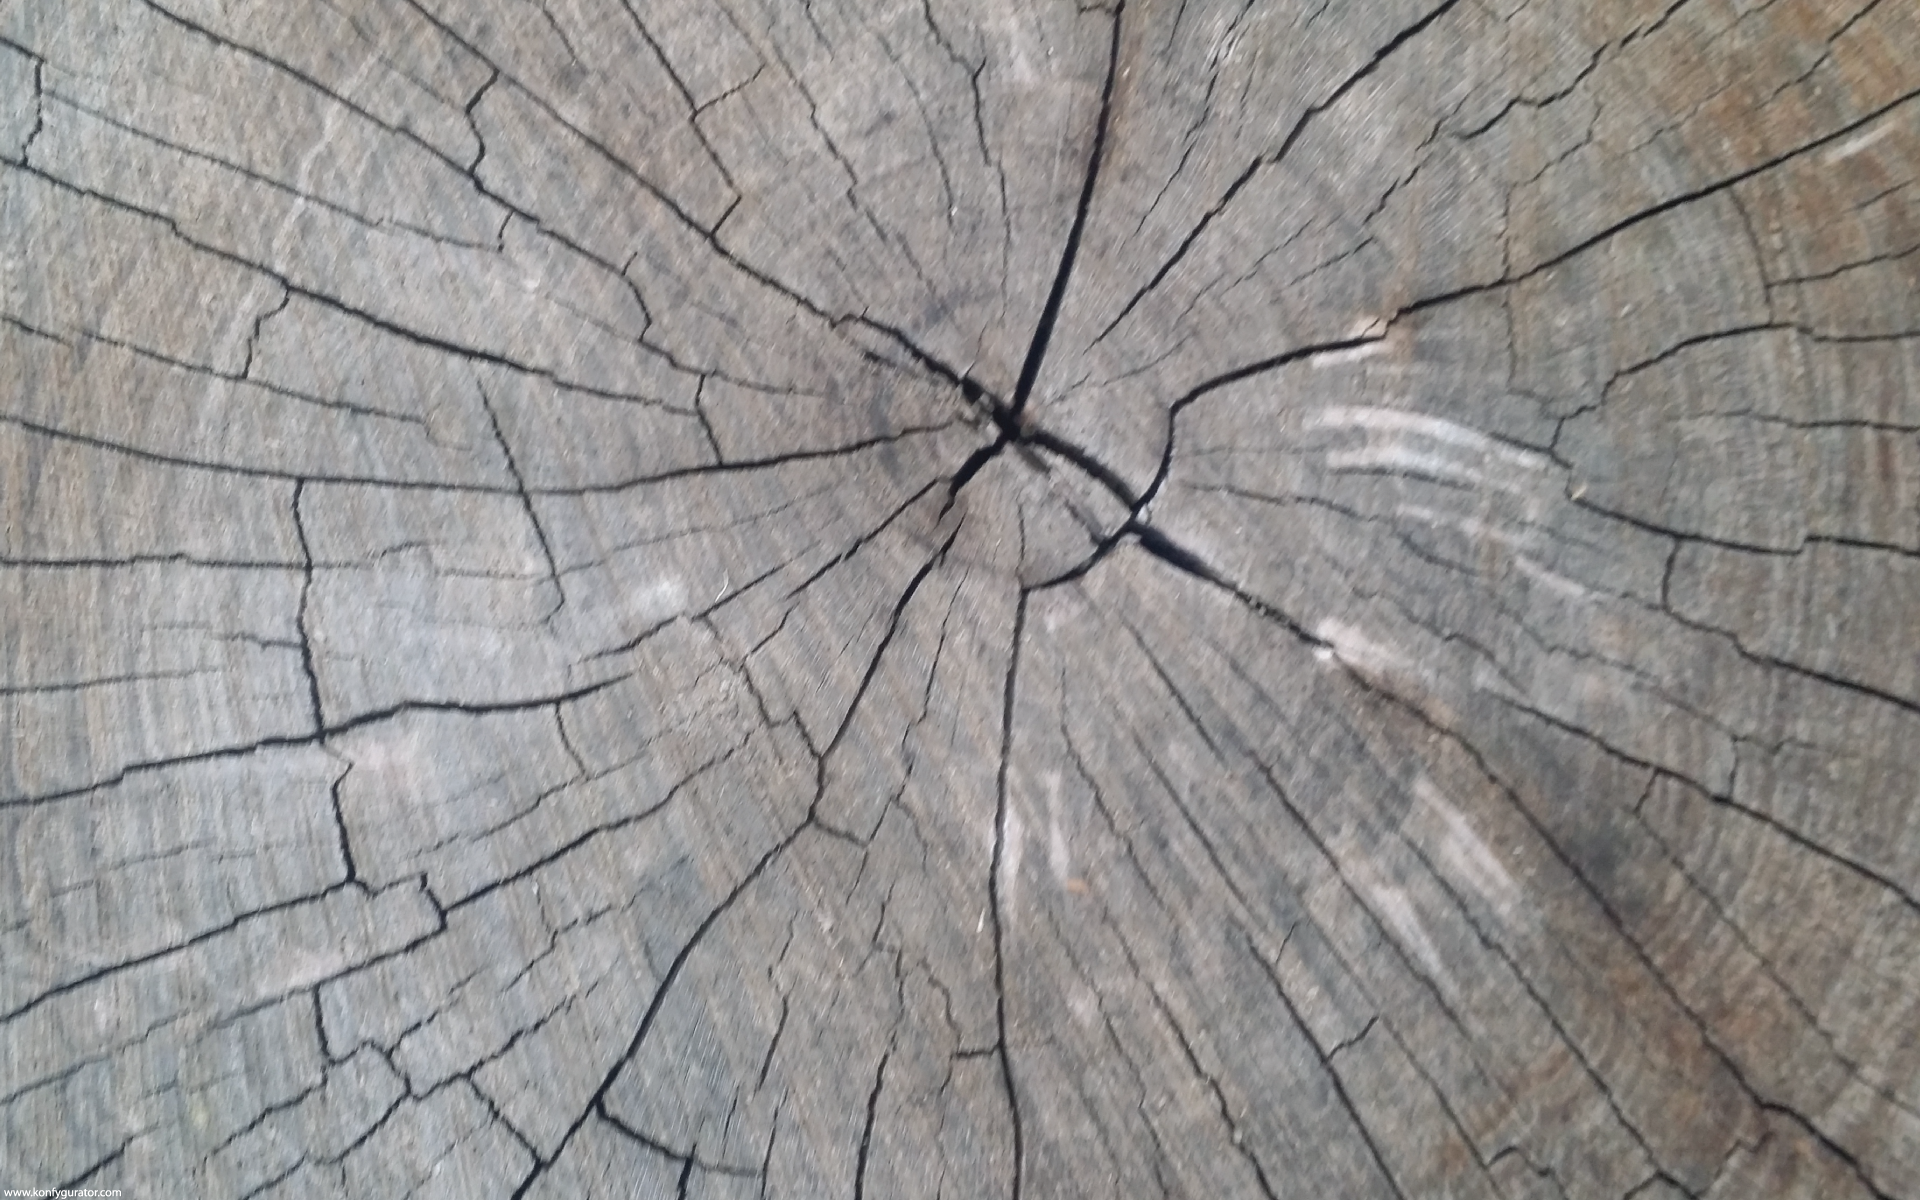 HD Wallpapers - Textures - stump, rings, wood, cracks